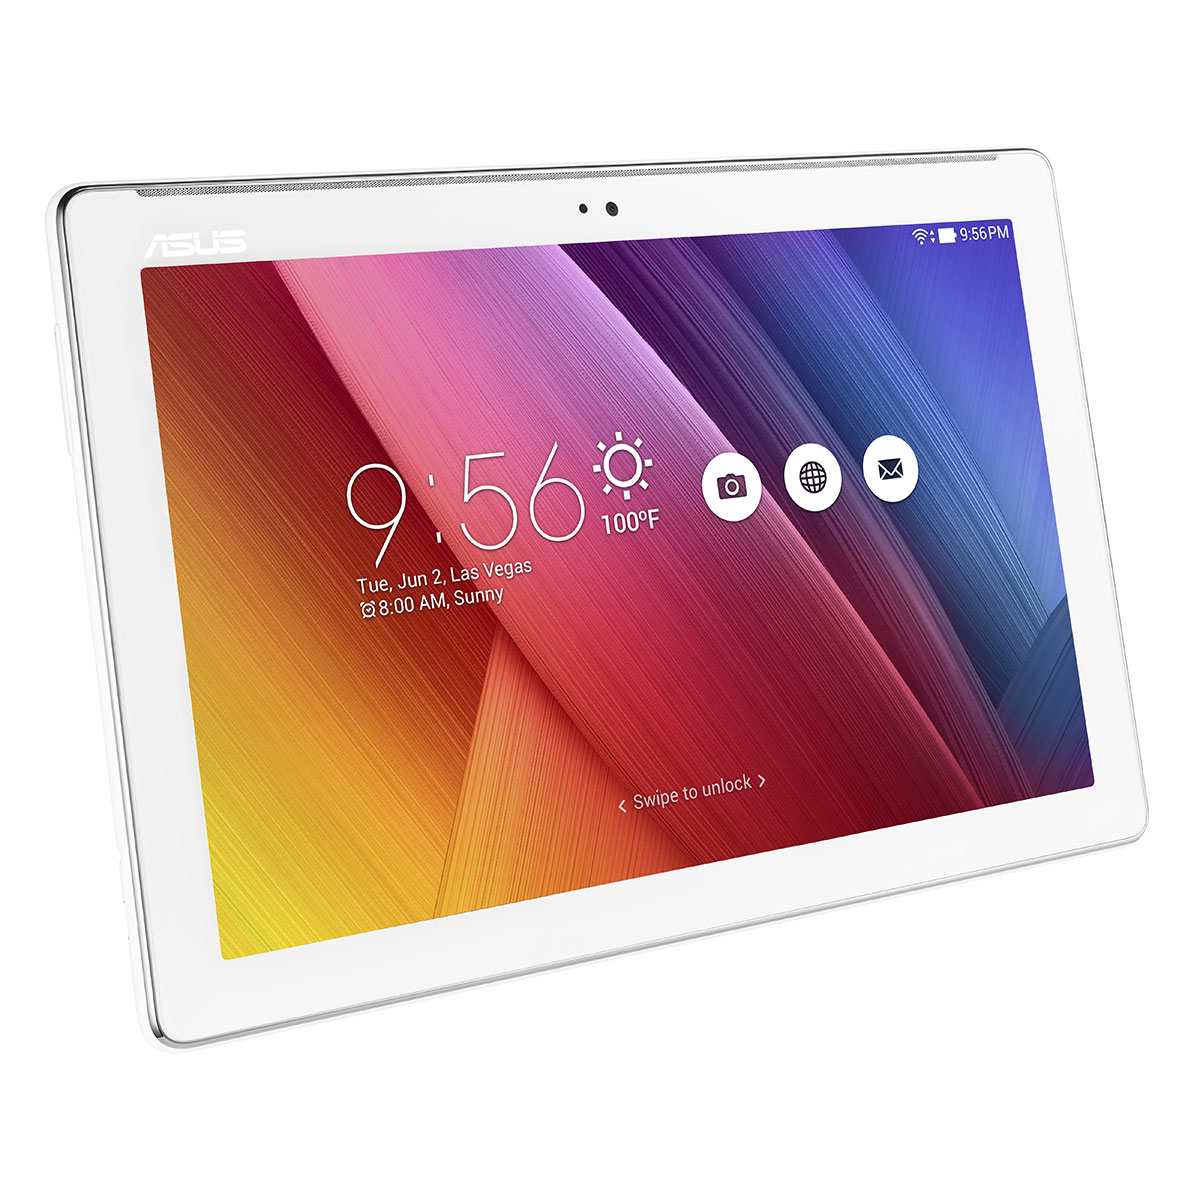 Asus zenpad 10 z300c 1b045a blanc tablette tactile asus for Housse tablette asus zenpad 10